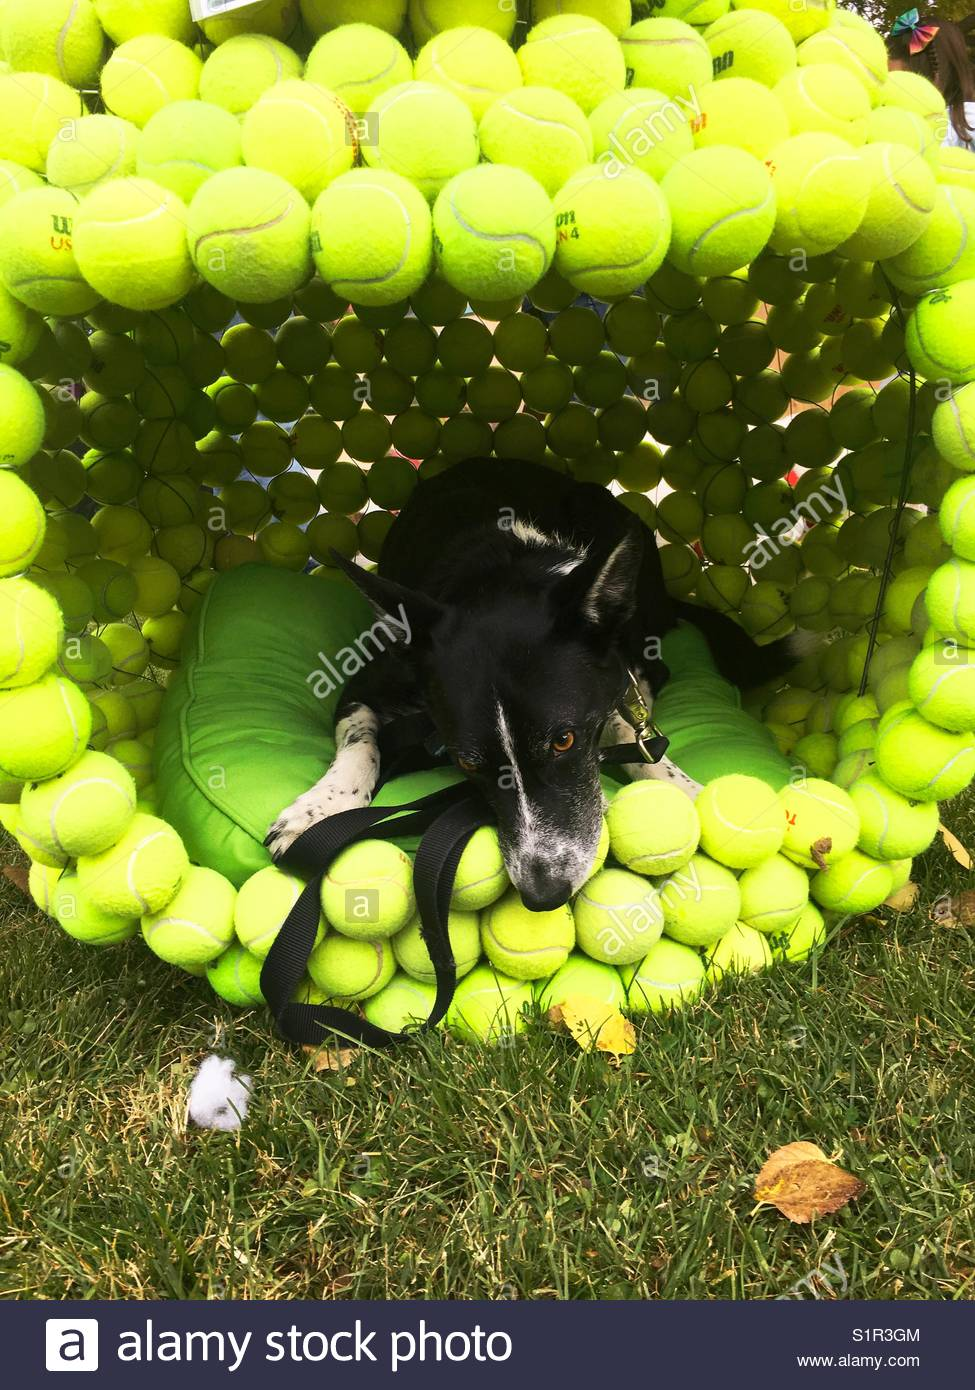 A Border Collie Dog Lies In A Dog House Made Of Tennis Balls Stock